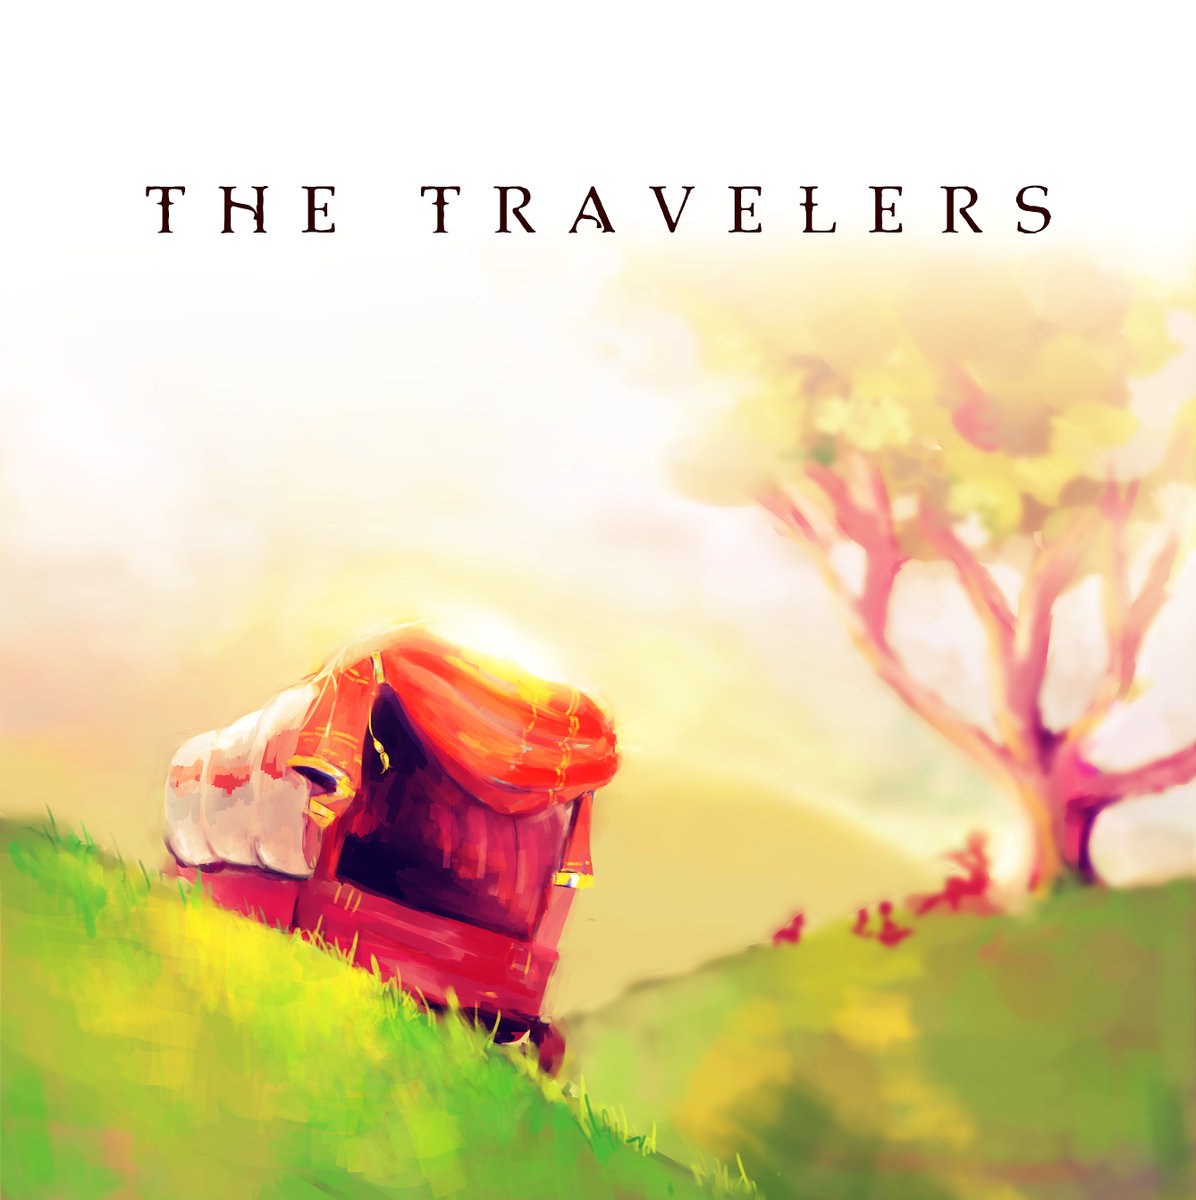 The Travelers VGM